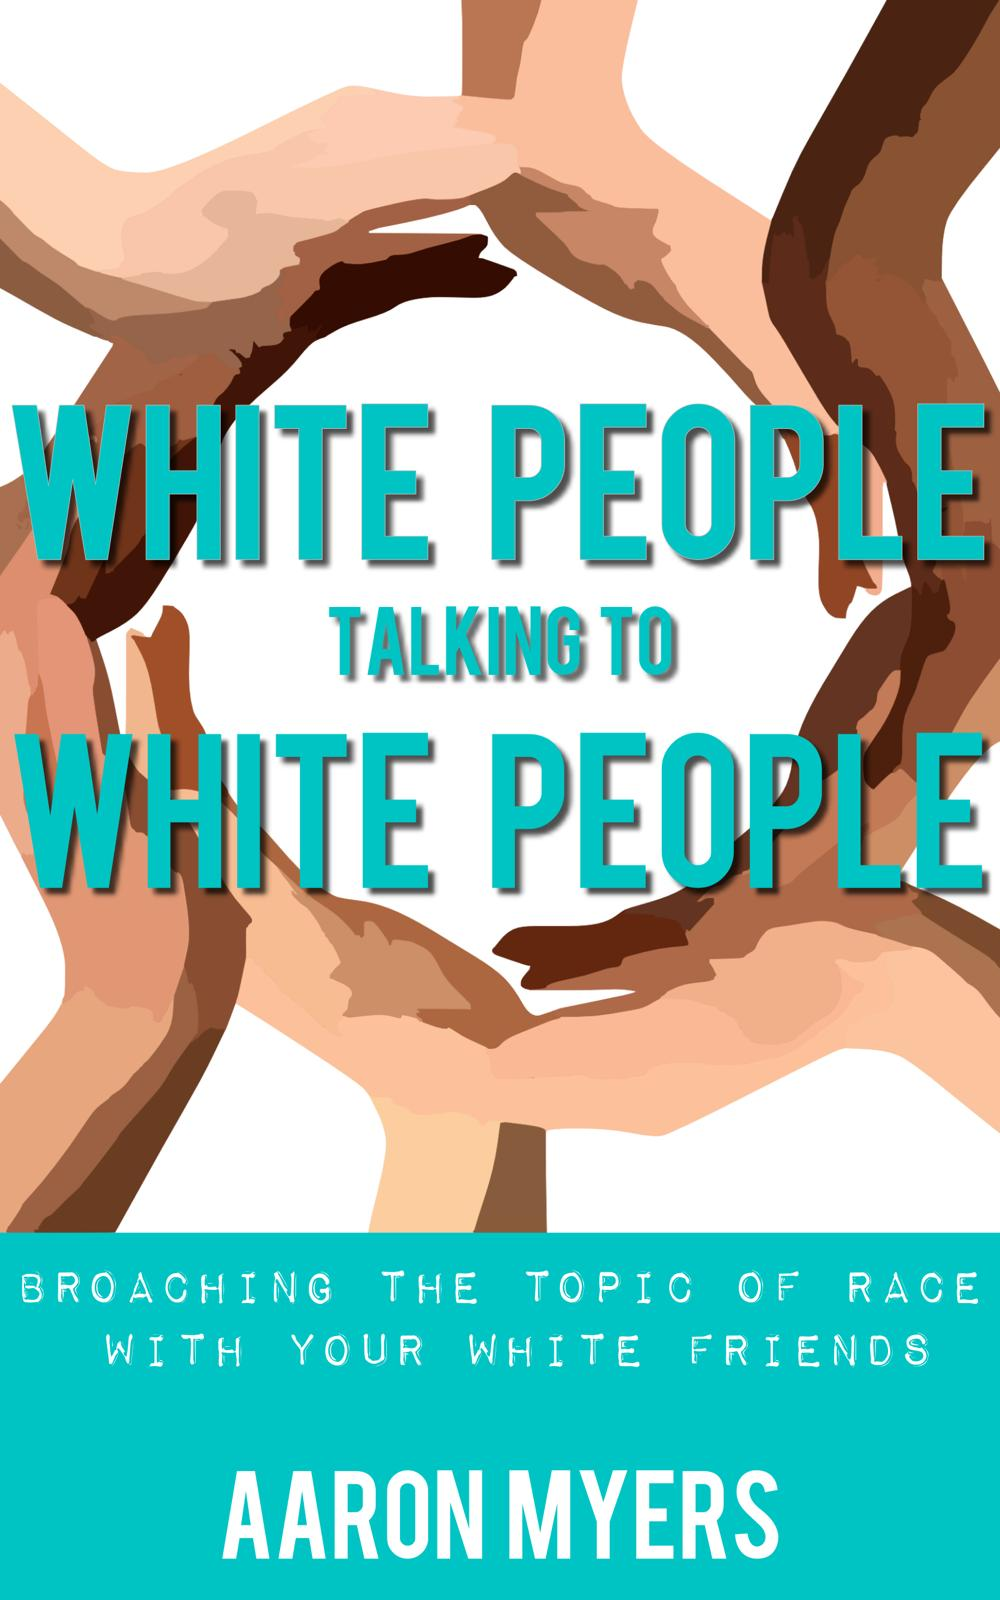 New Book Offers Guide for White People to Have Meaningful Conversations on Race